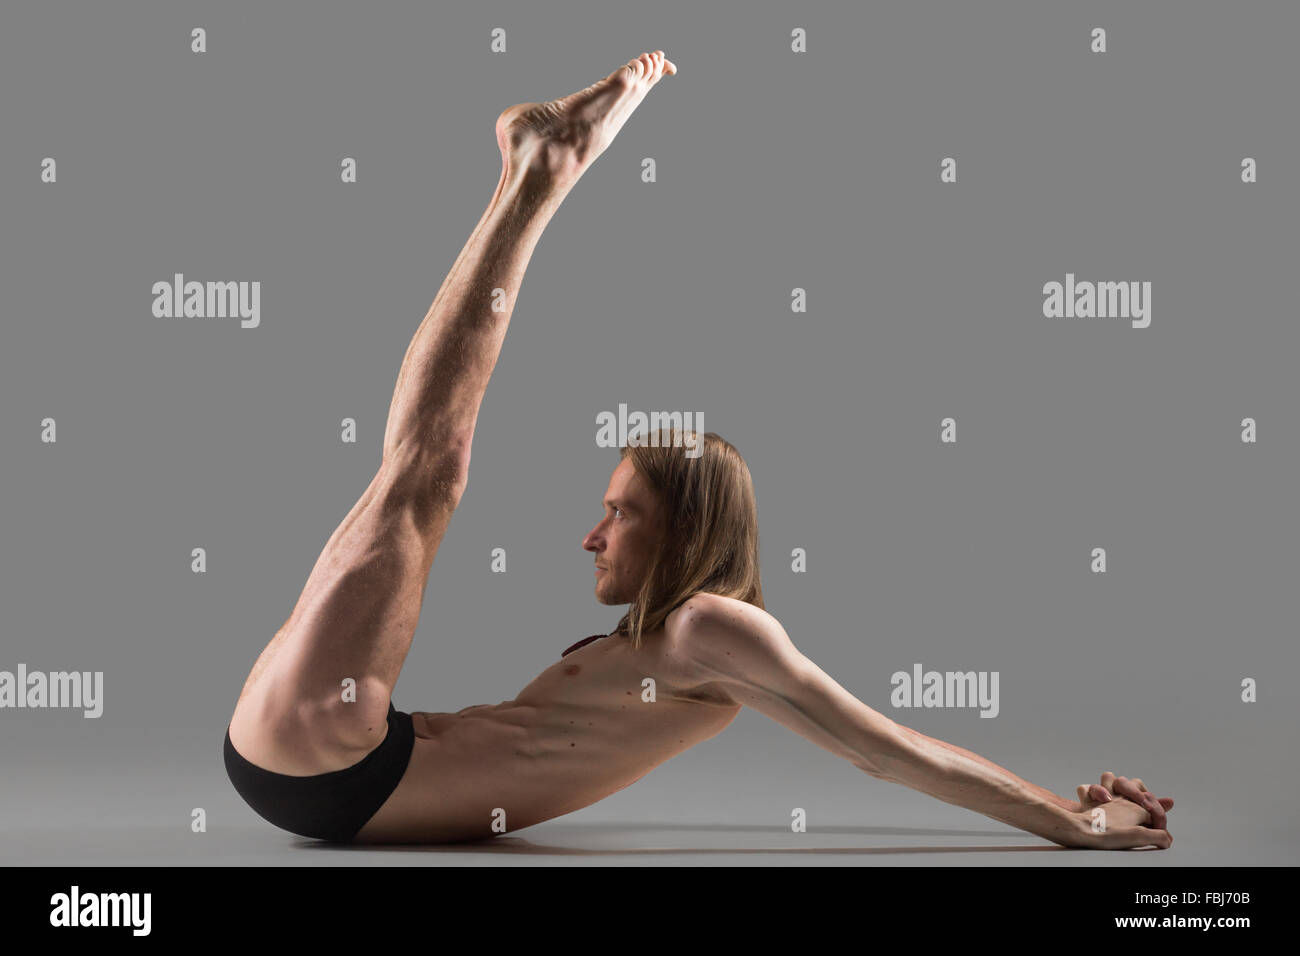 Sporty muscular young yogi man doing exercises for abdominal muscles and shoulders, lifting up legs, studio shot - Stock Image